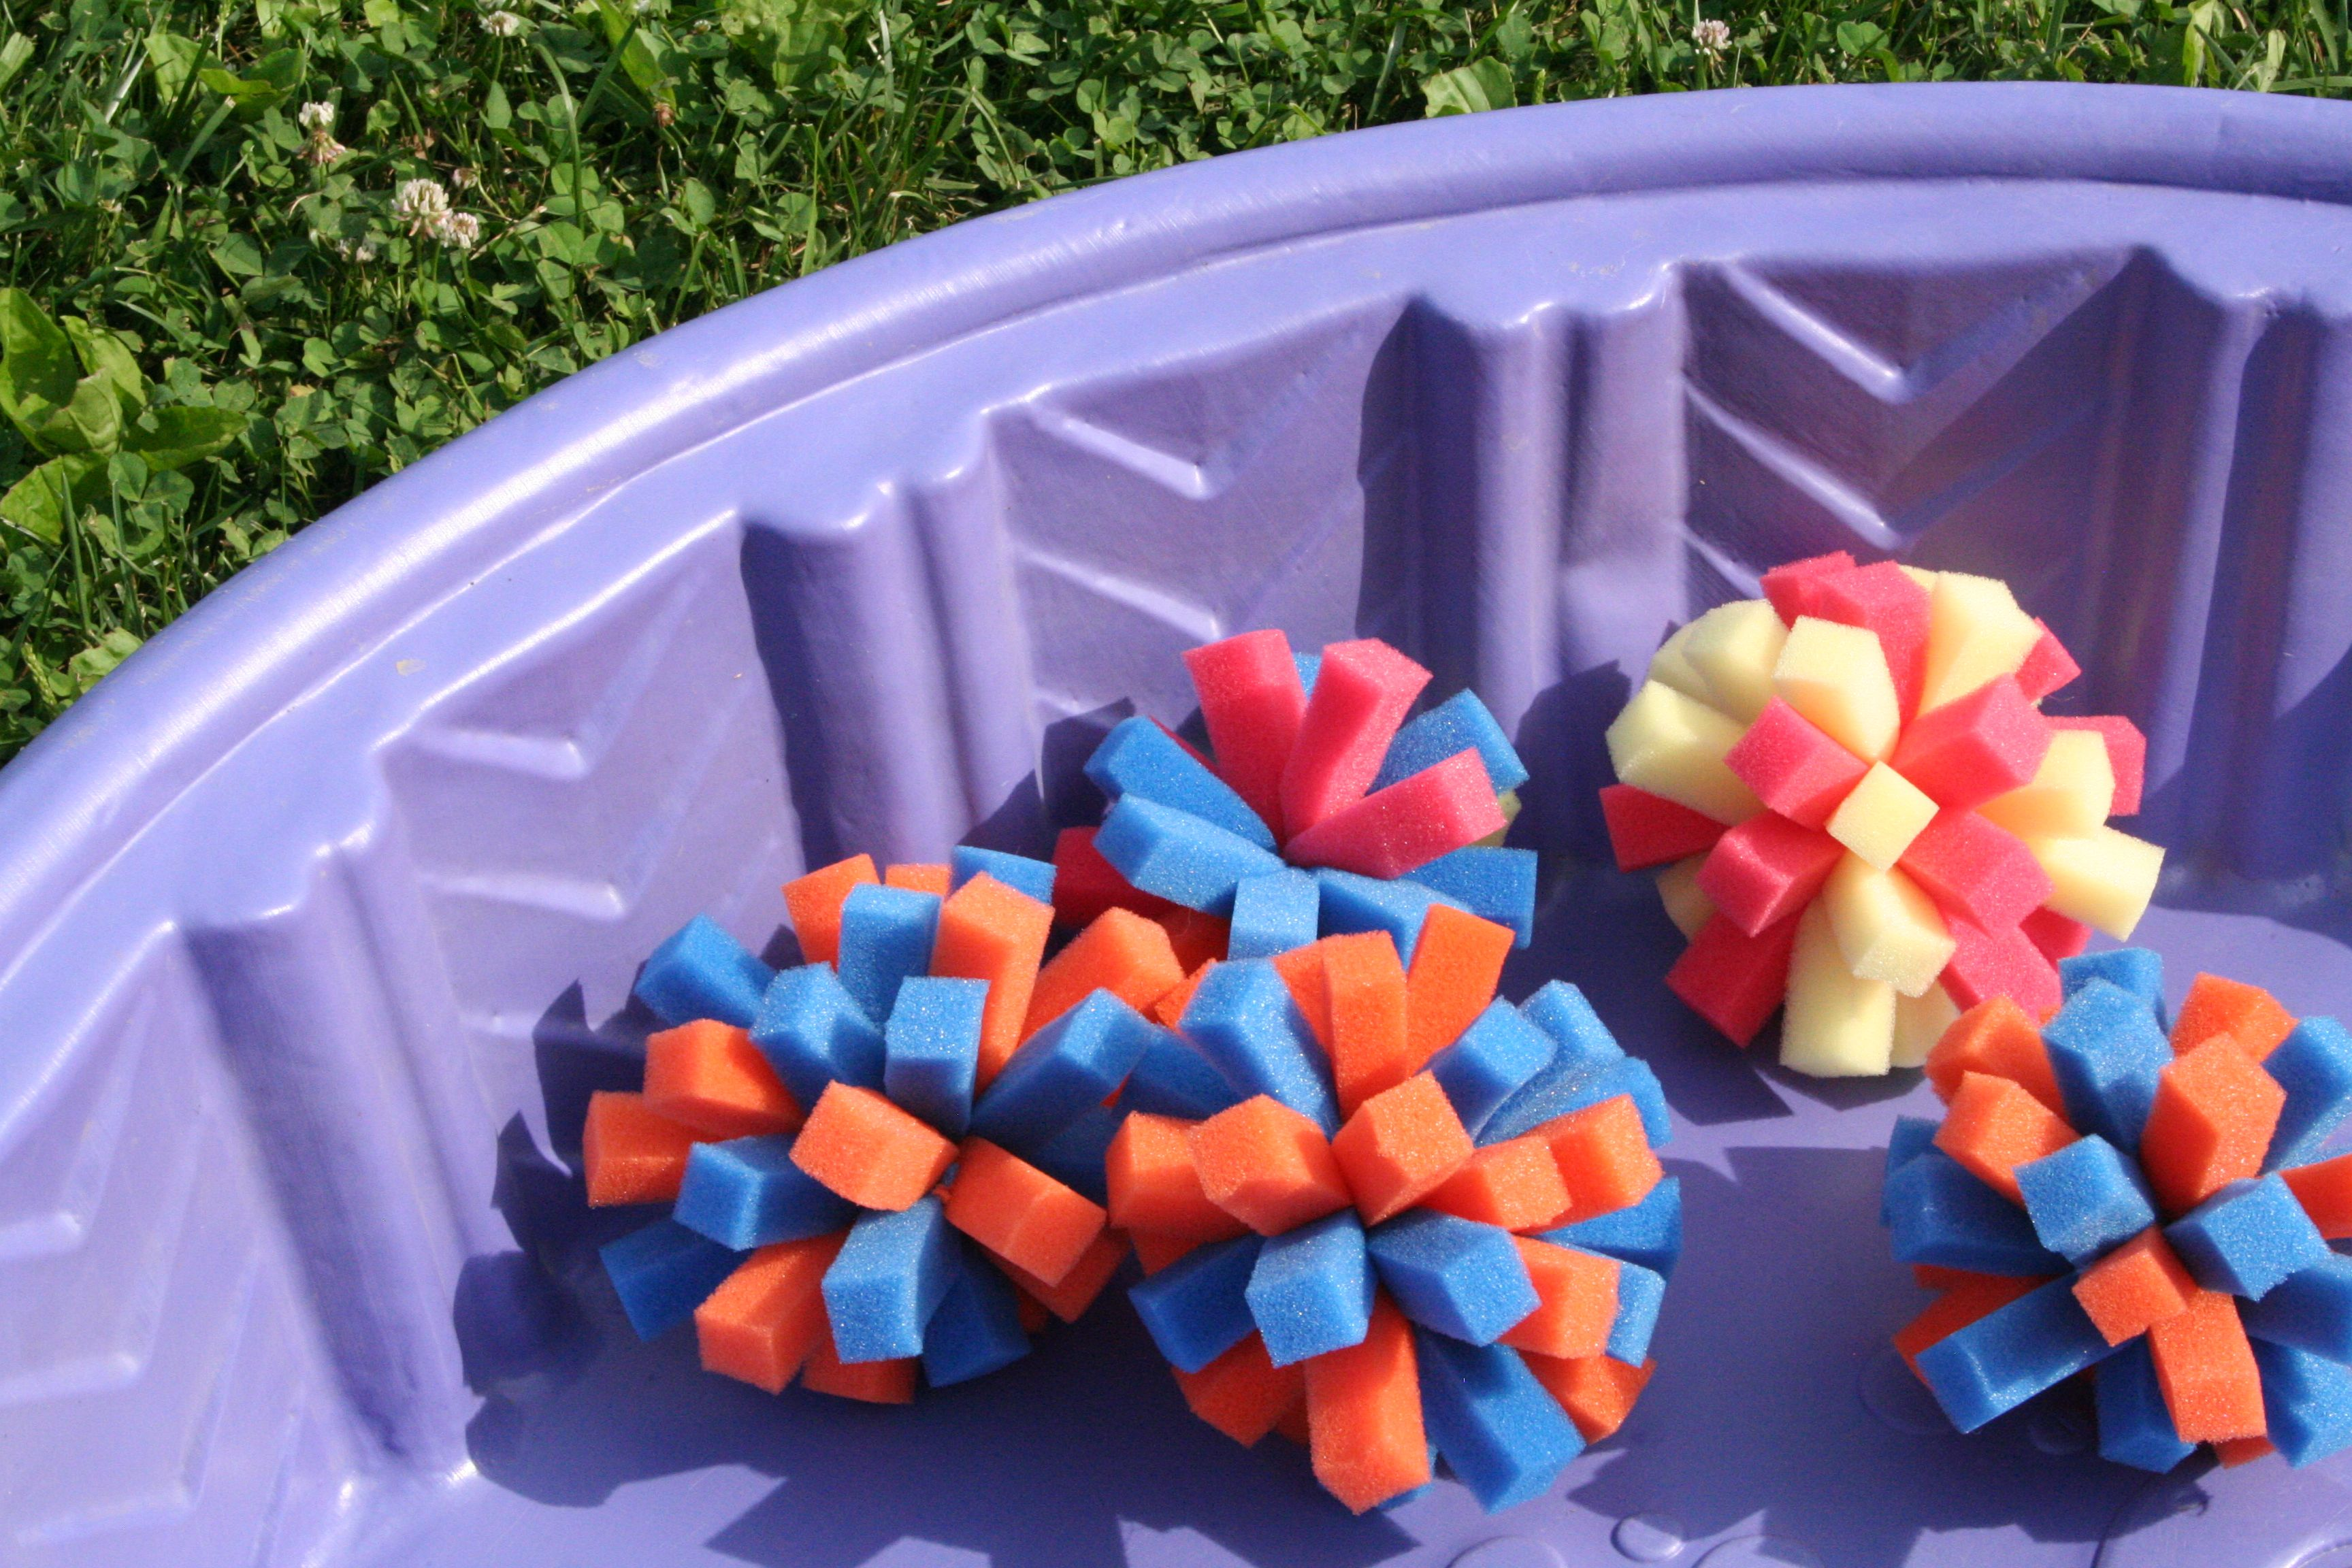 Make your own water toys by using sponges to create fun pool balls!